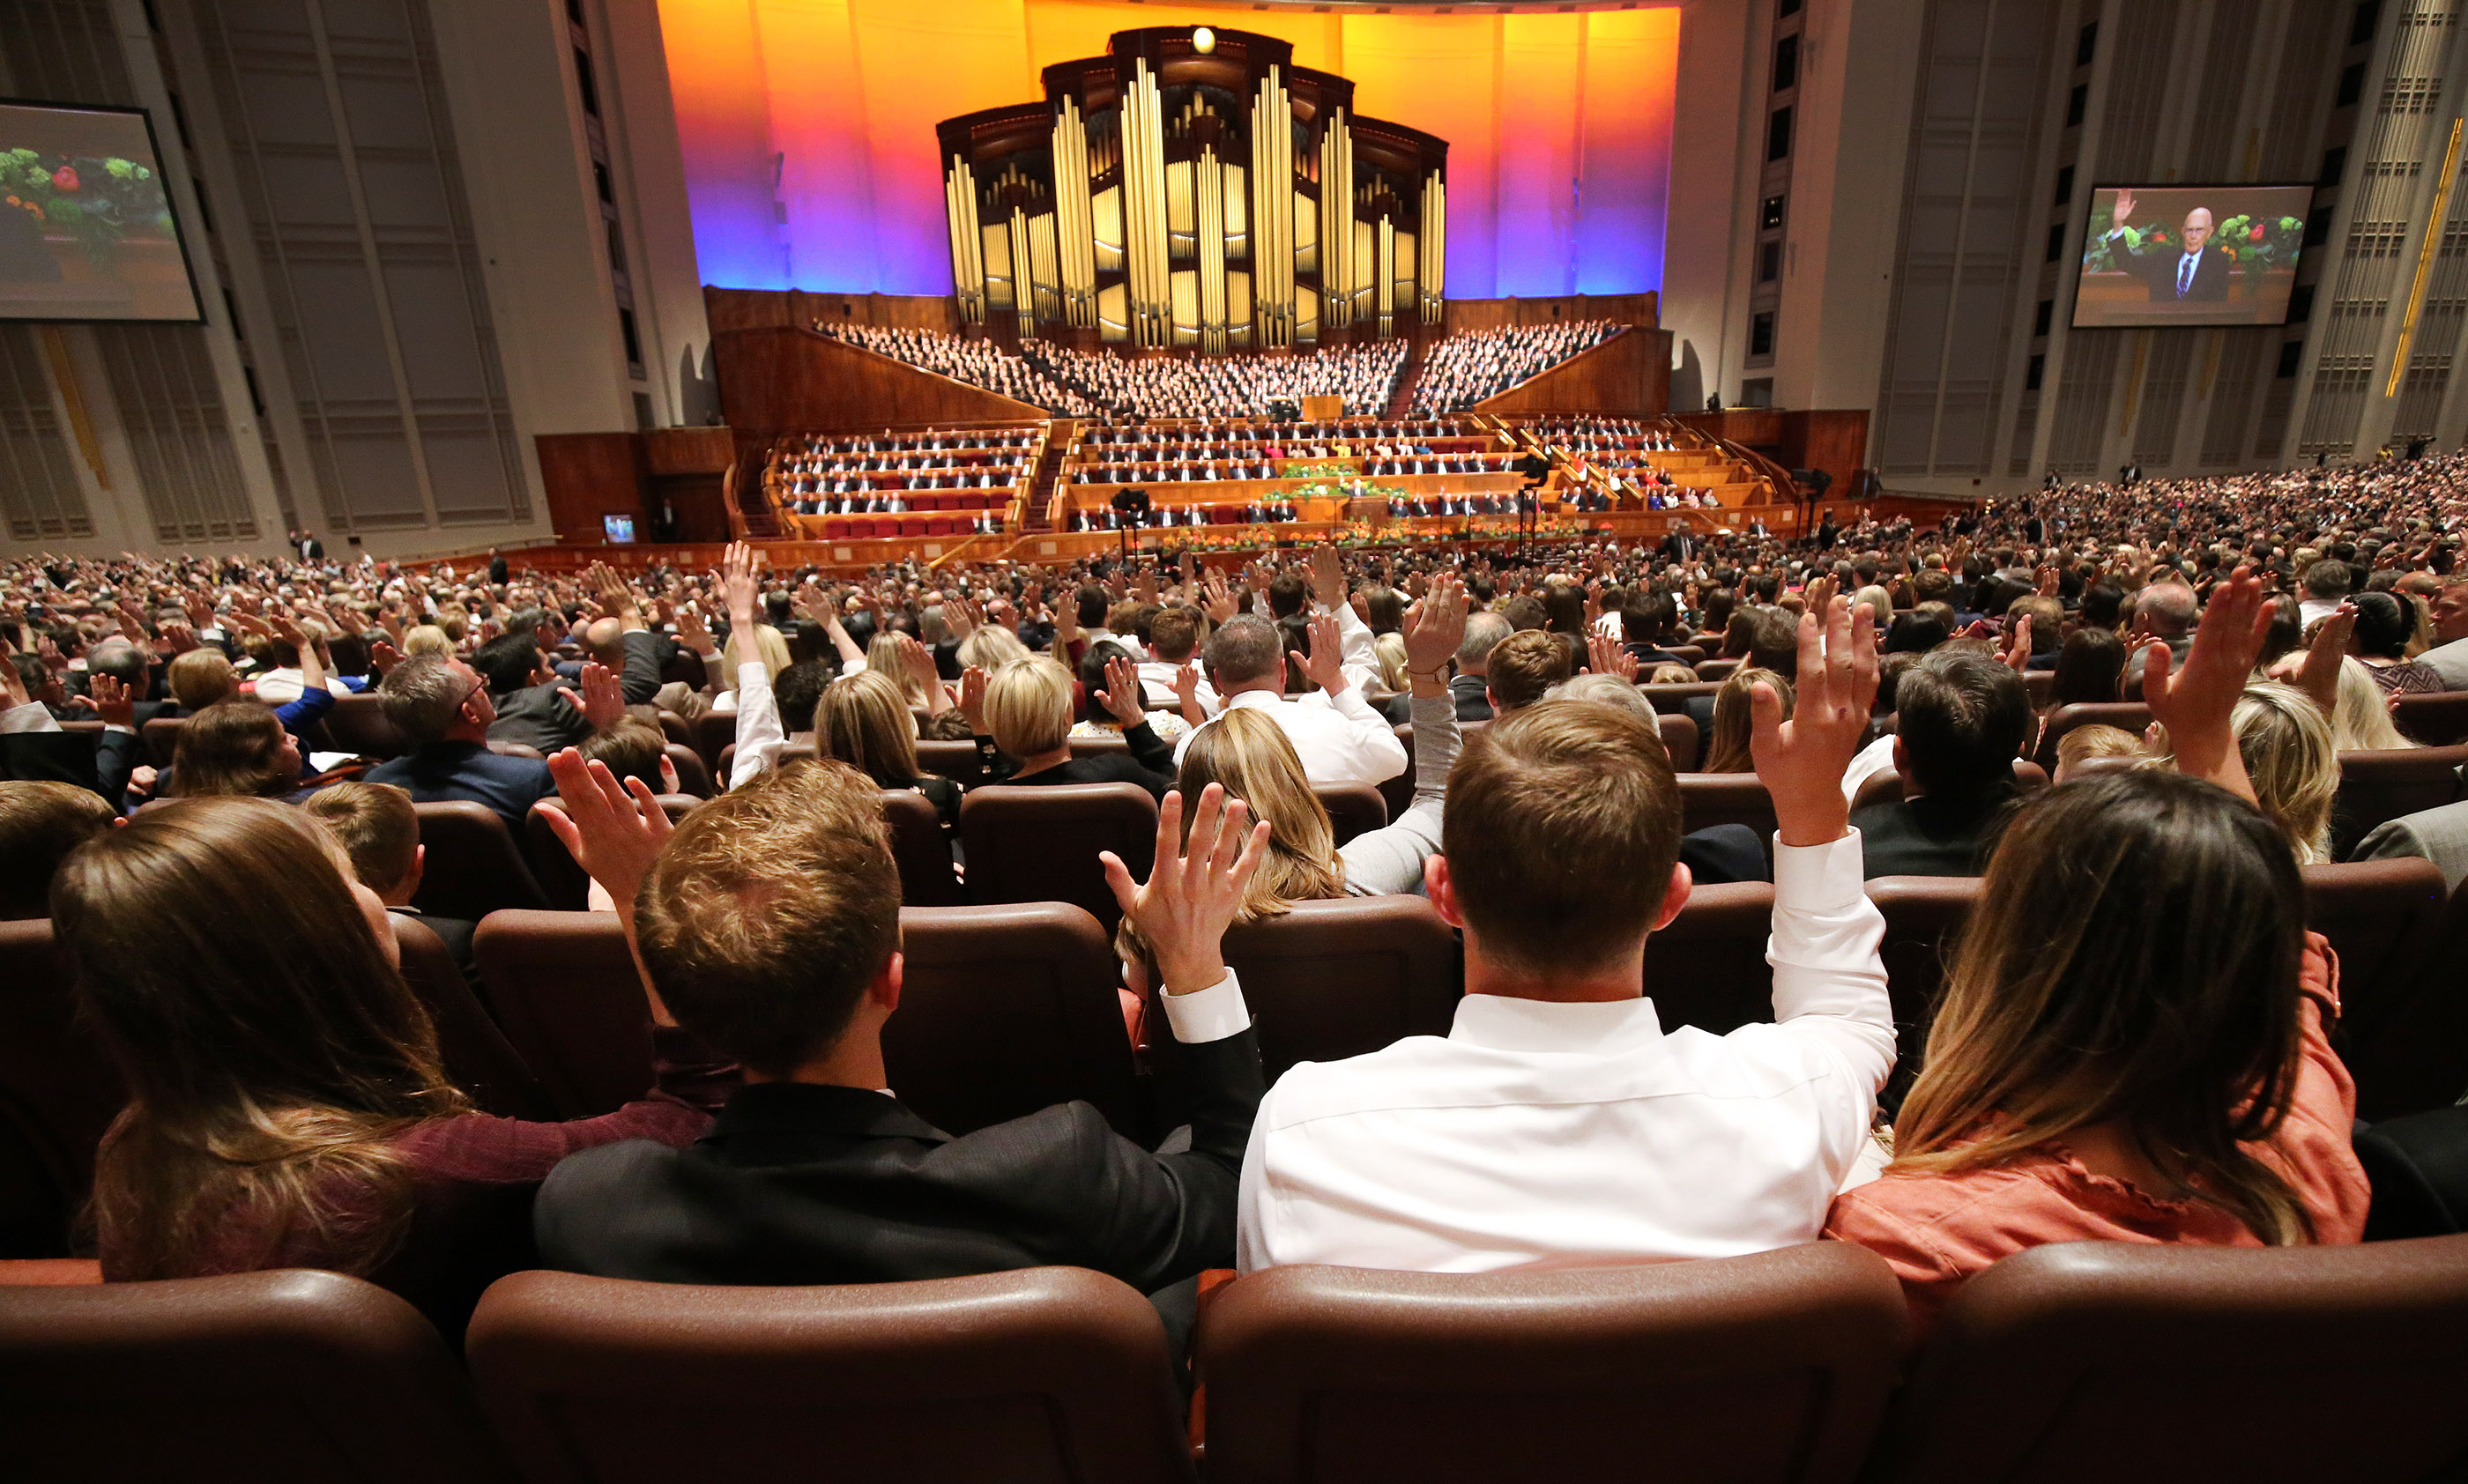 Attendees sustain leaders the189th Annual General Conference of The Church of Jesus Christ of Latter-day Saints in Salt Lake City on Saturday, April 6, 2019.